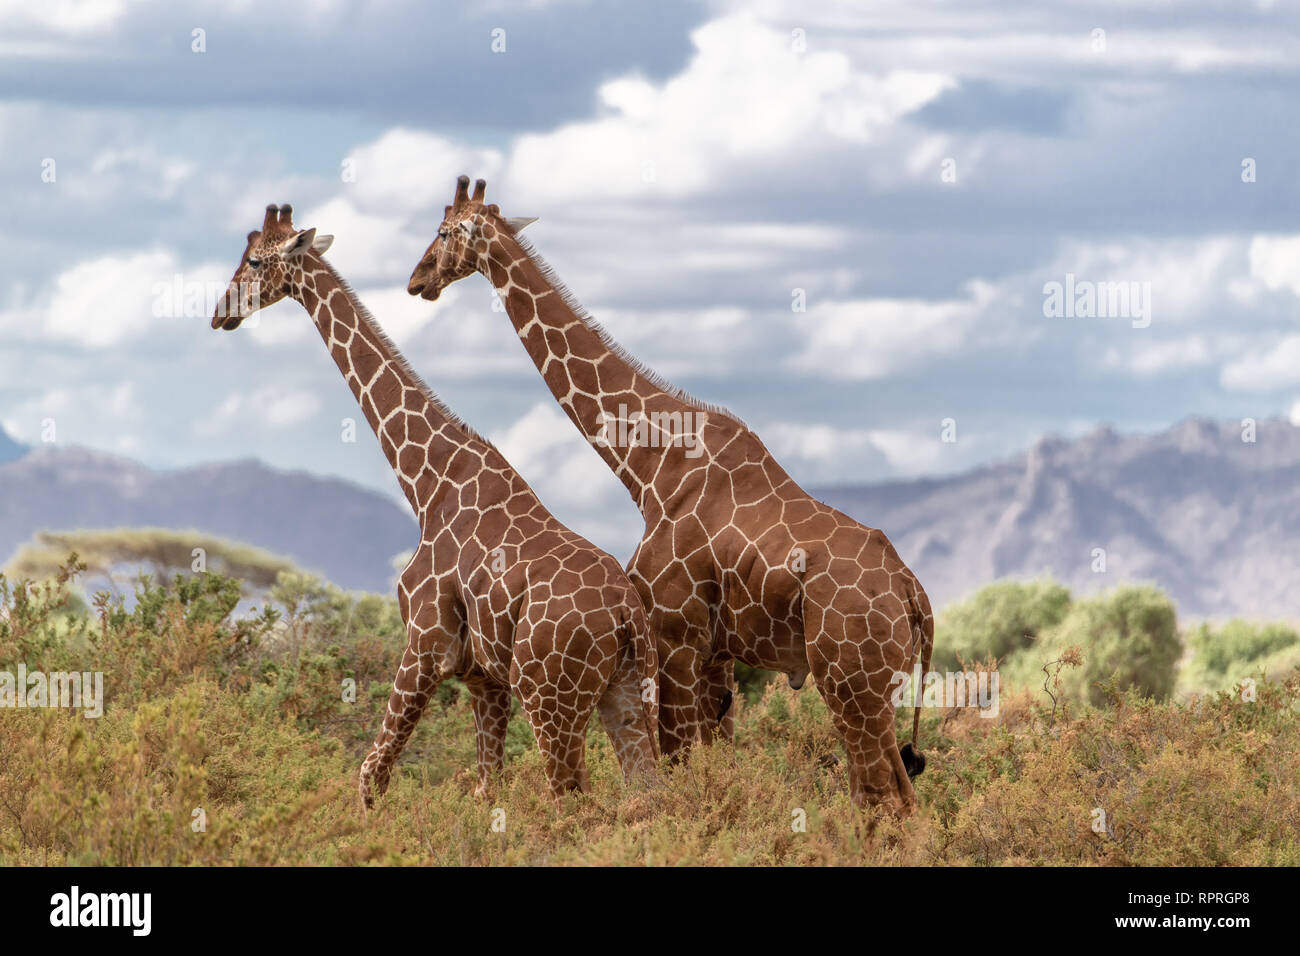 Two reticulated giraffes (Giraffa camelopardalis reticulata) survey the late afternoon scene in Kenya, Africa. They are considered Endangered. Stock Photo